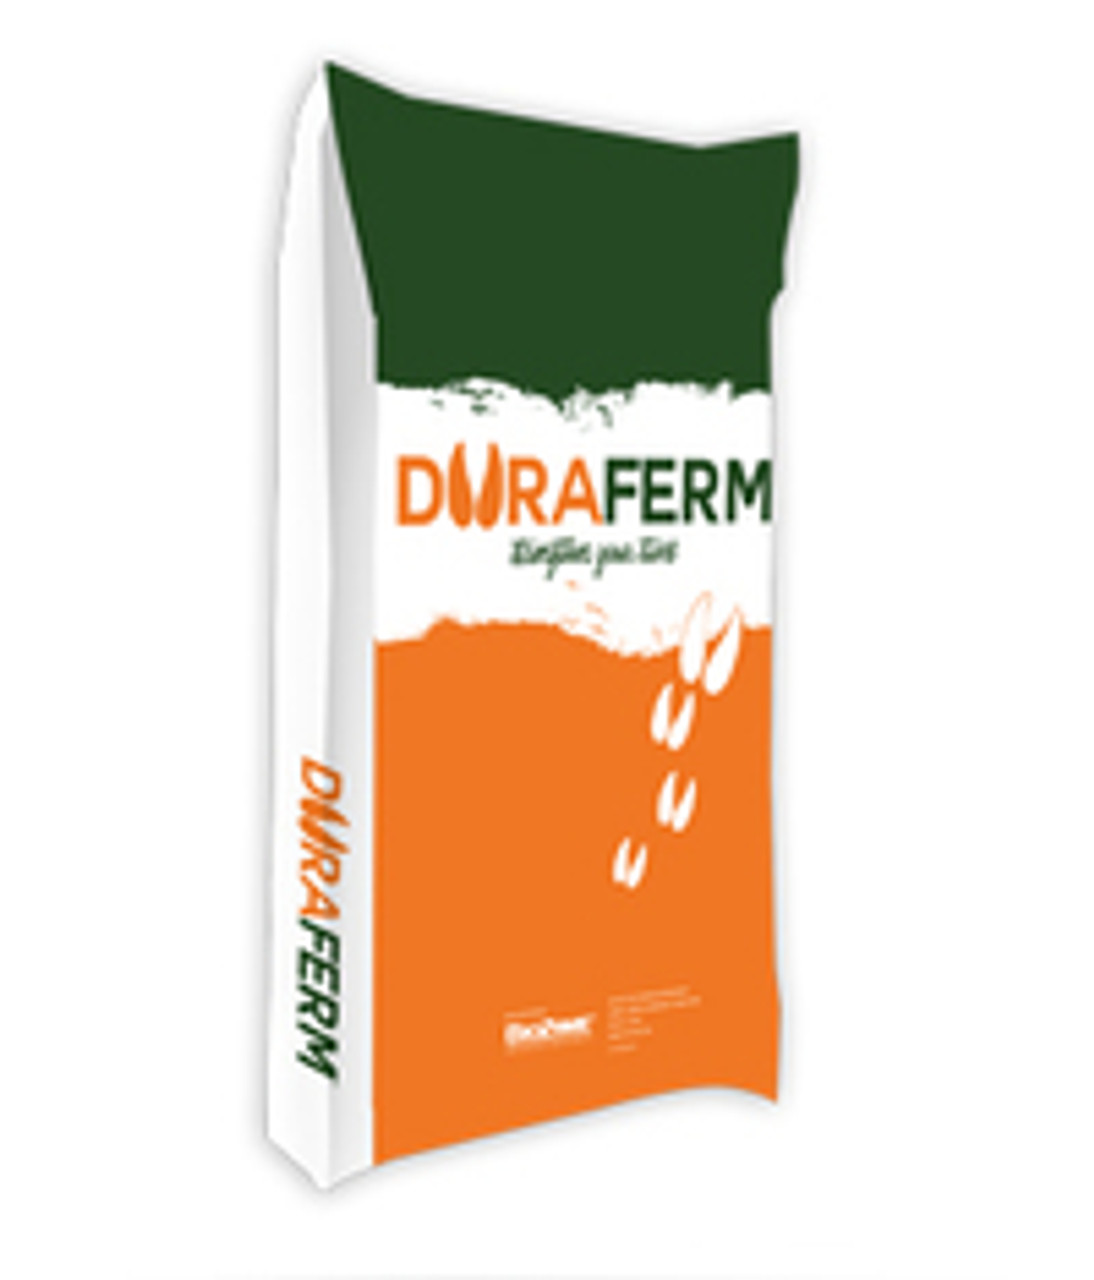 DuraFerm Concept Aid Sheep 50 lb Bag